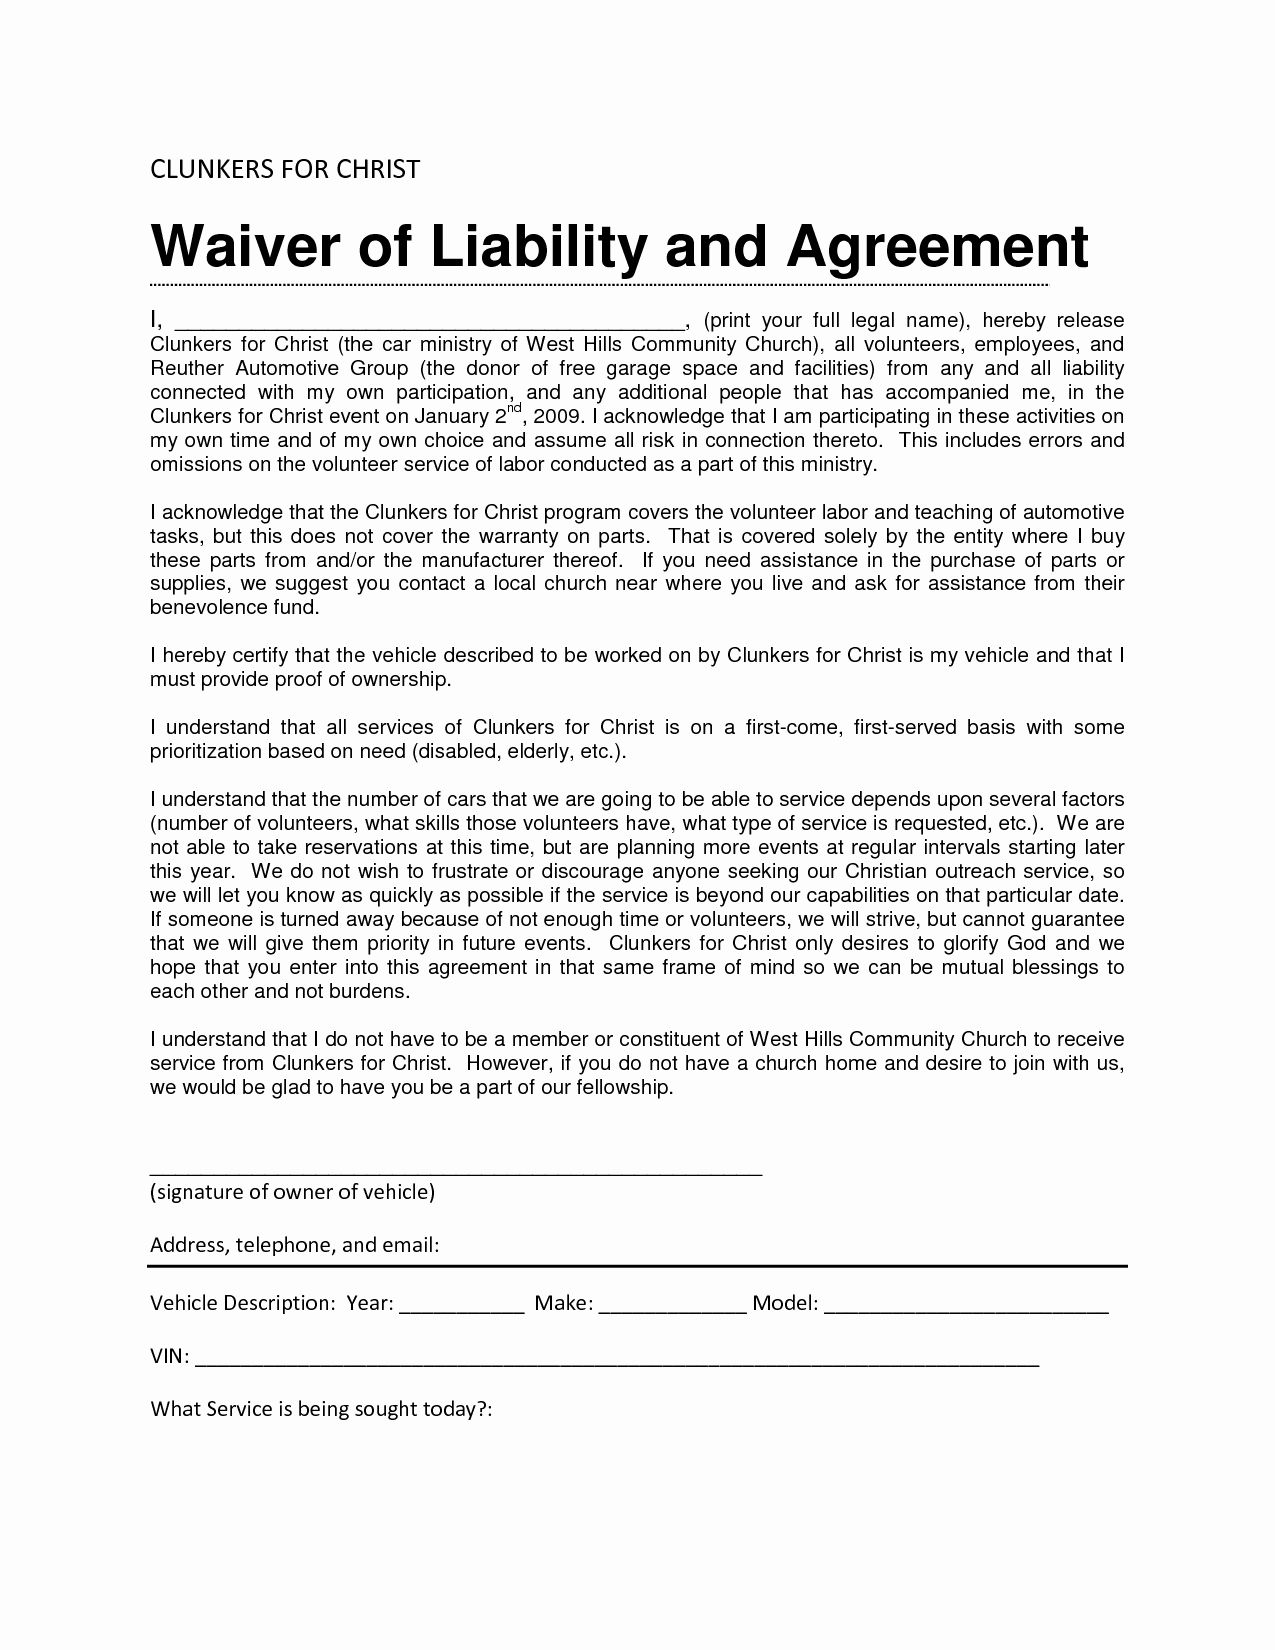 Liability Waiver Form Template Free Lovely Liability Waiver Sample Bamboodownunder General Liability Liability Waiver Liability